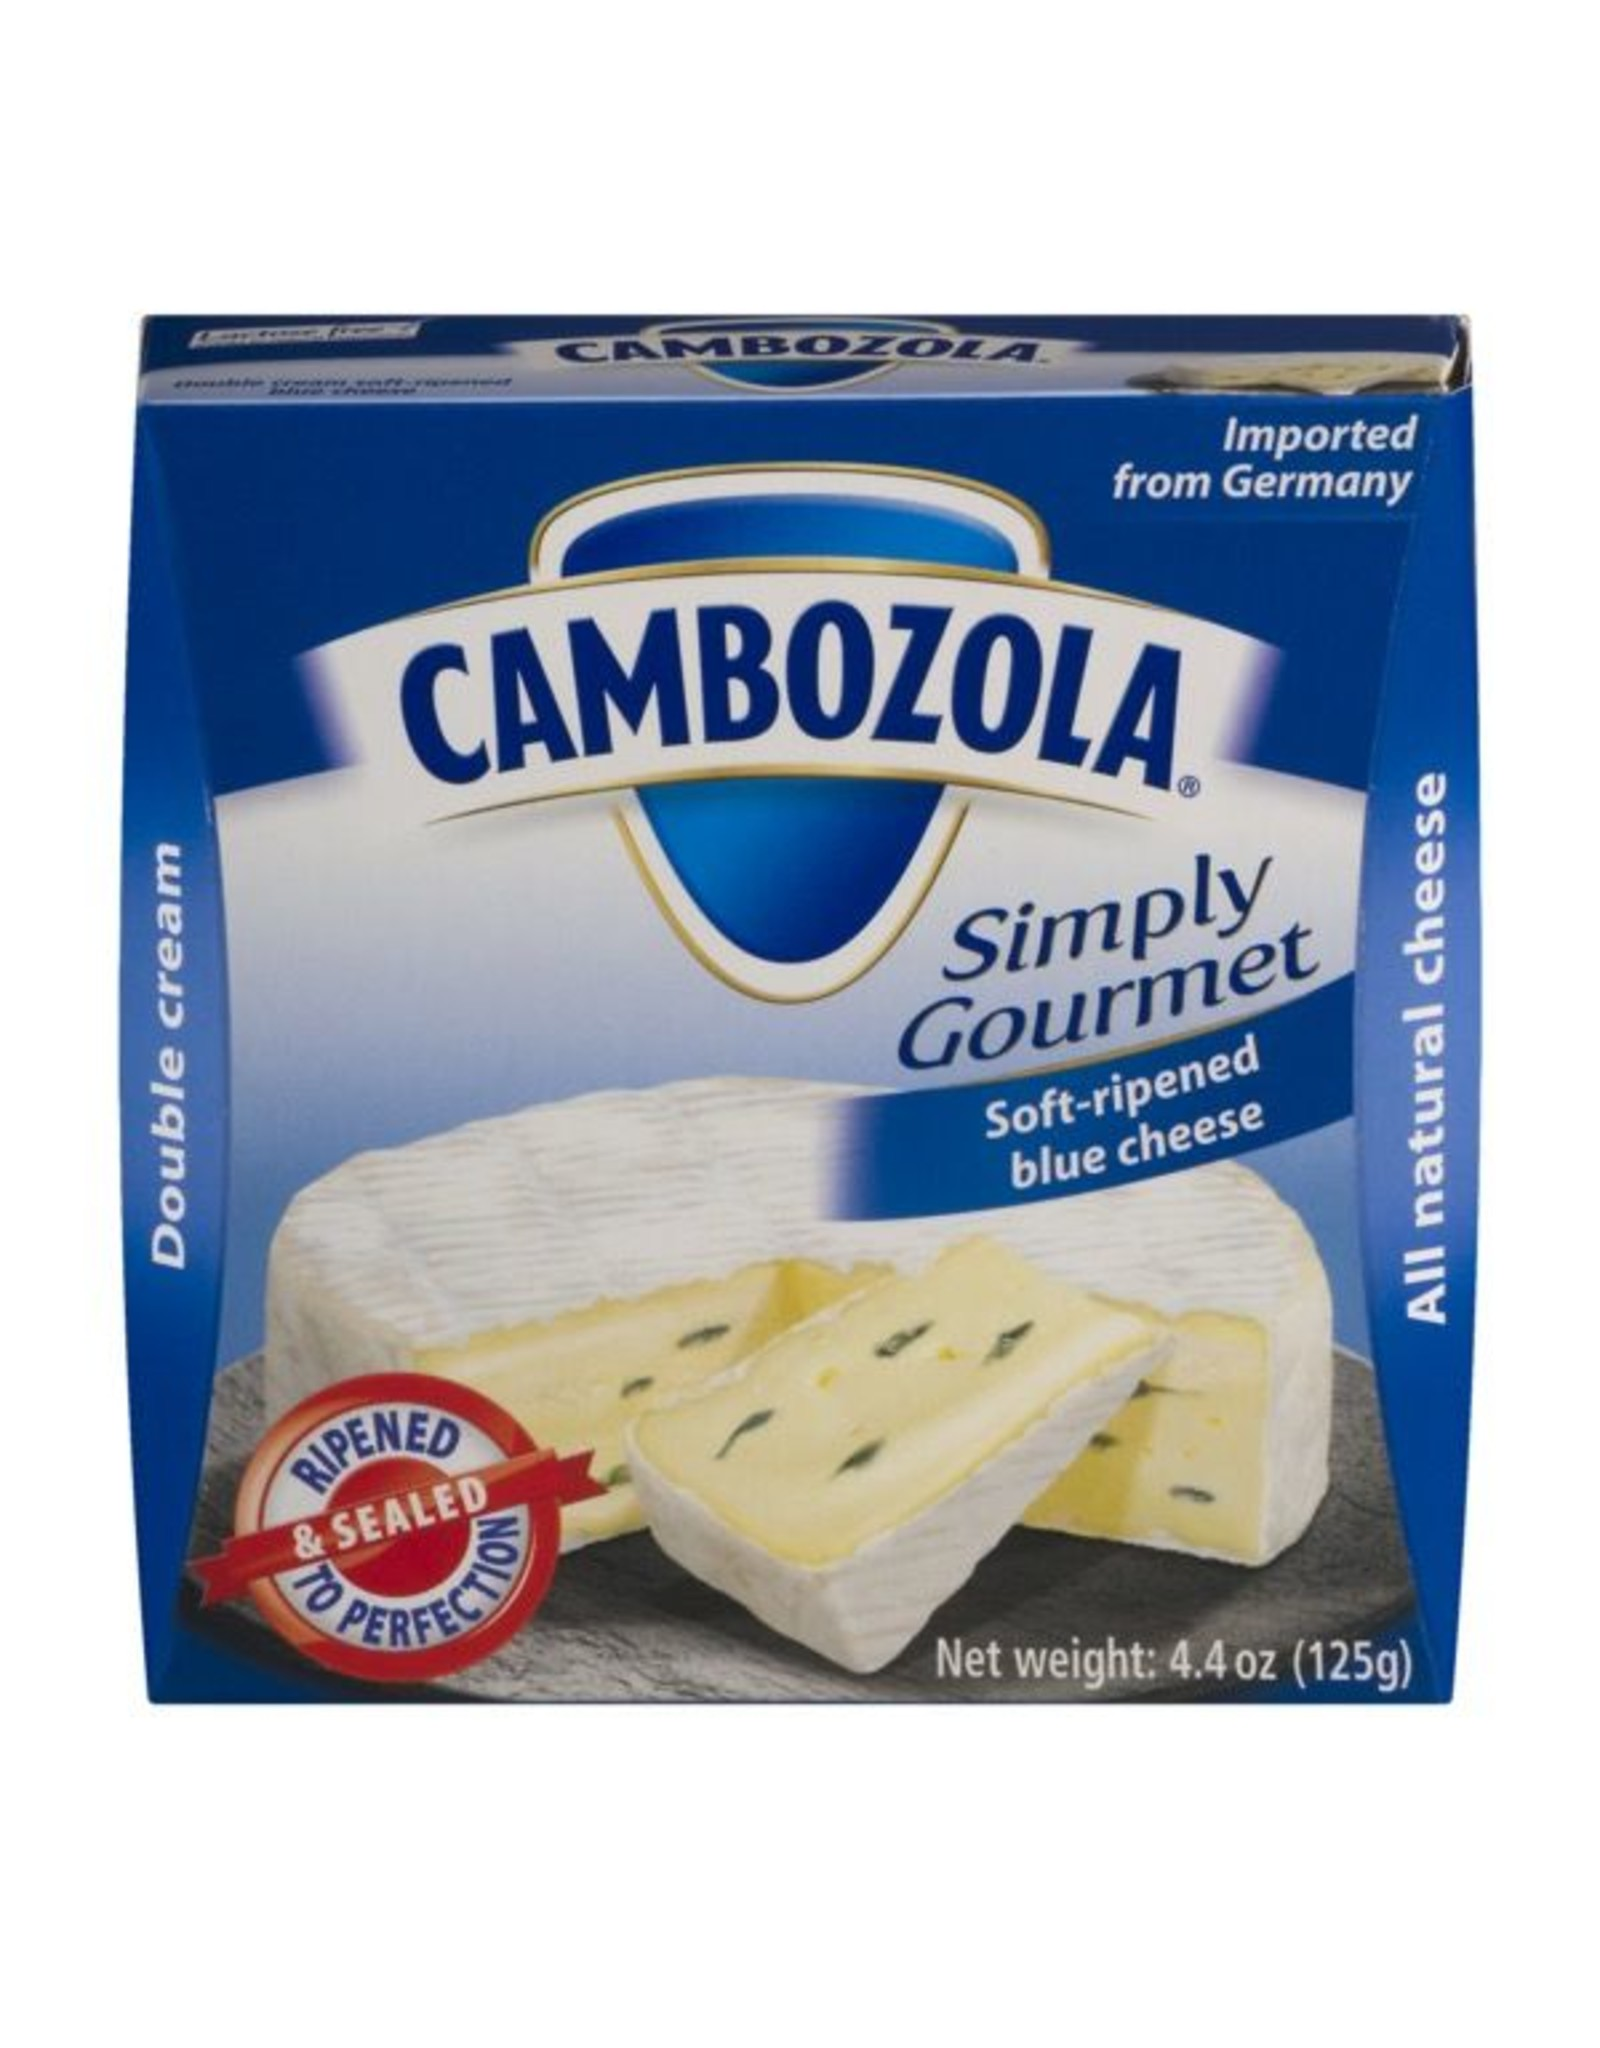 Specialty Cheese Cambozola, Soft ripened Blue Cheese, 4.40z